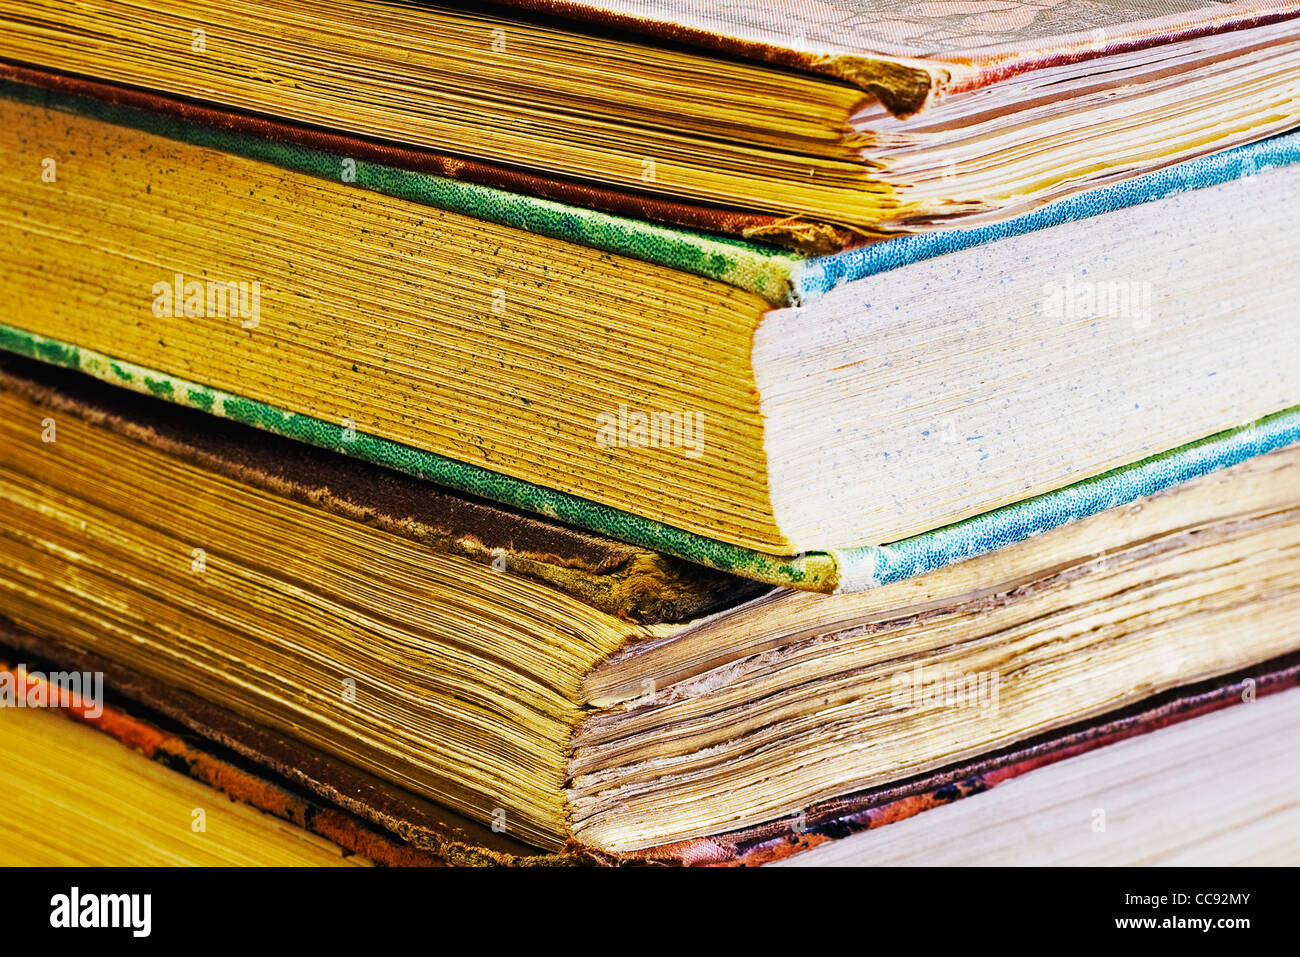 stacked collection of old books - Stock Image